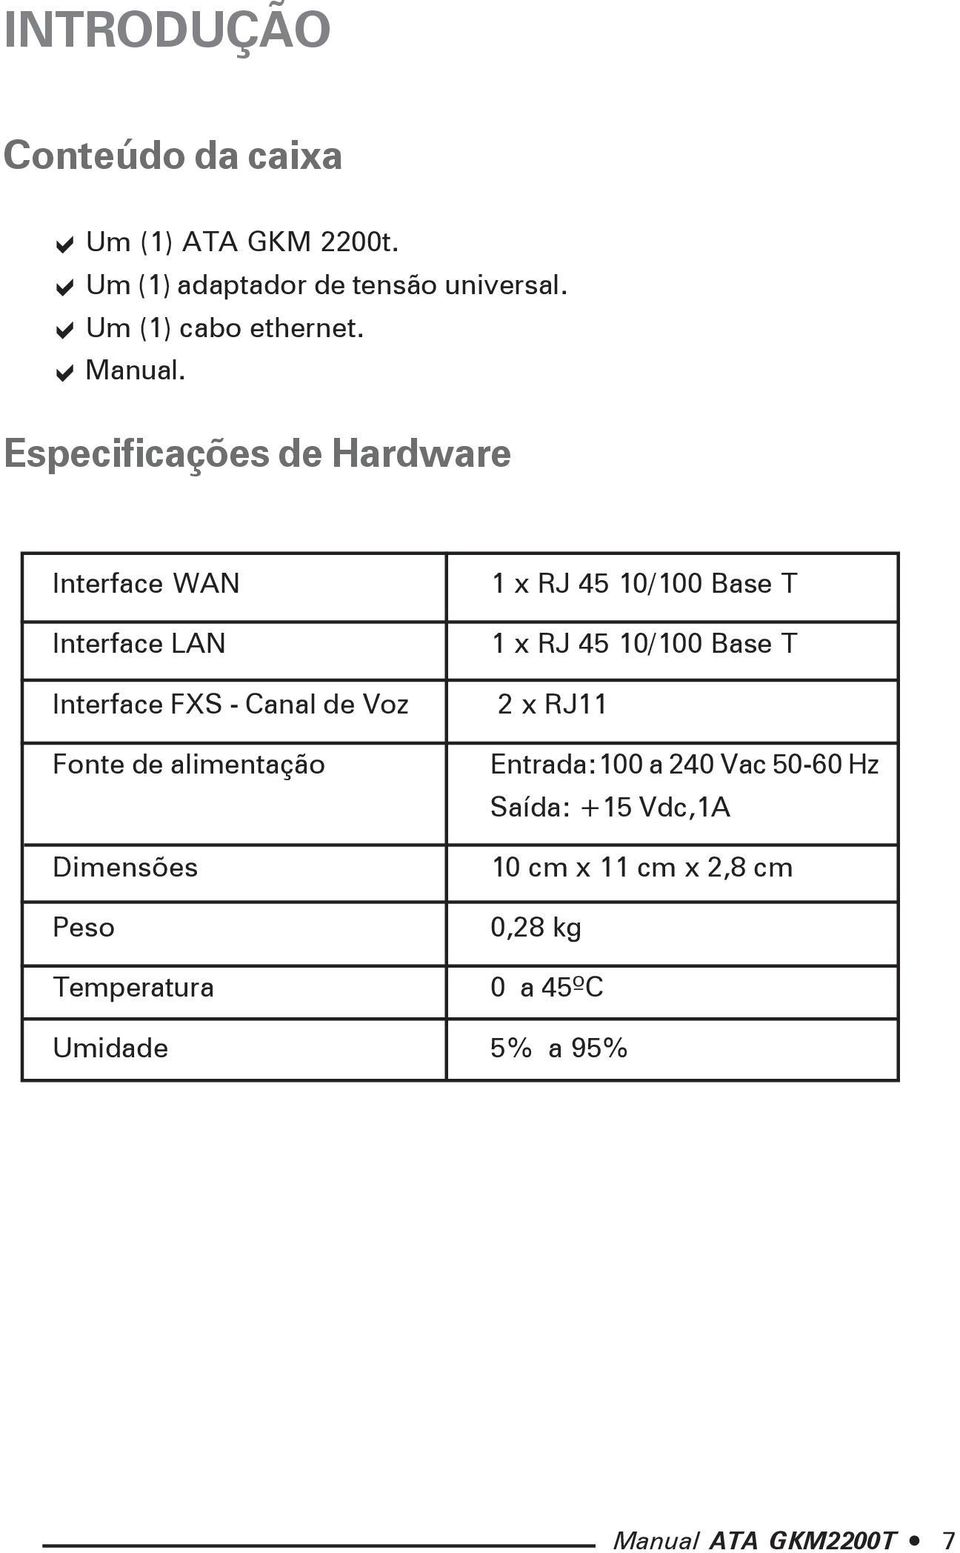 Especificações de Hardware Interface WAN Interface LAN 1 x RJ 45 10/100 Base T 1 x RJ 45 10/100 Base T